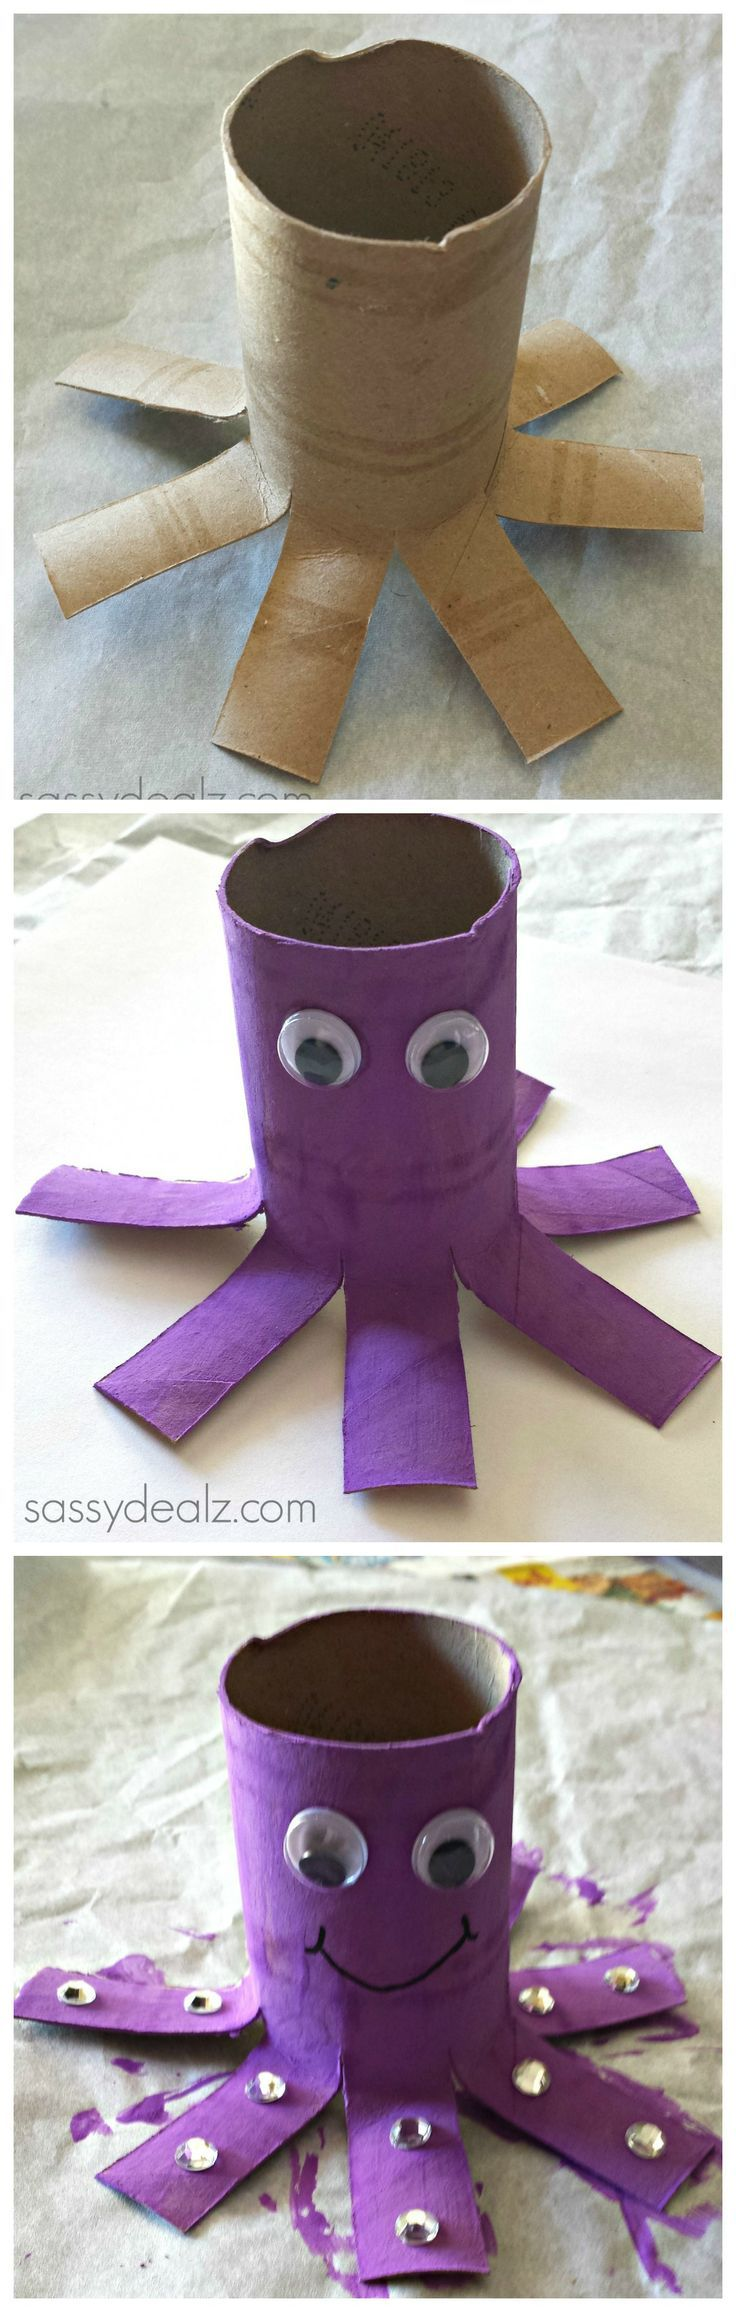 Octopus Toilet Paper Roll Craft For Kids #Recycled toilet paper tube art project #Ocean #Purple | http://www.sassydealz.com/2014/01/octopus-toilet-paper-roll-craft-for-kids.html